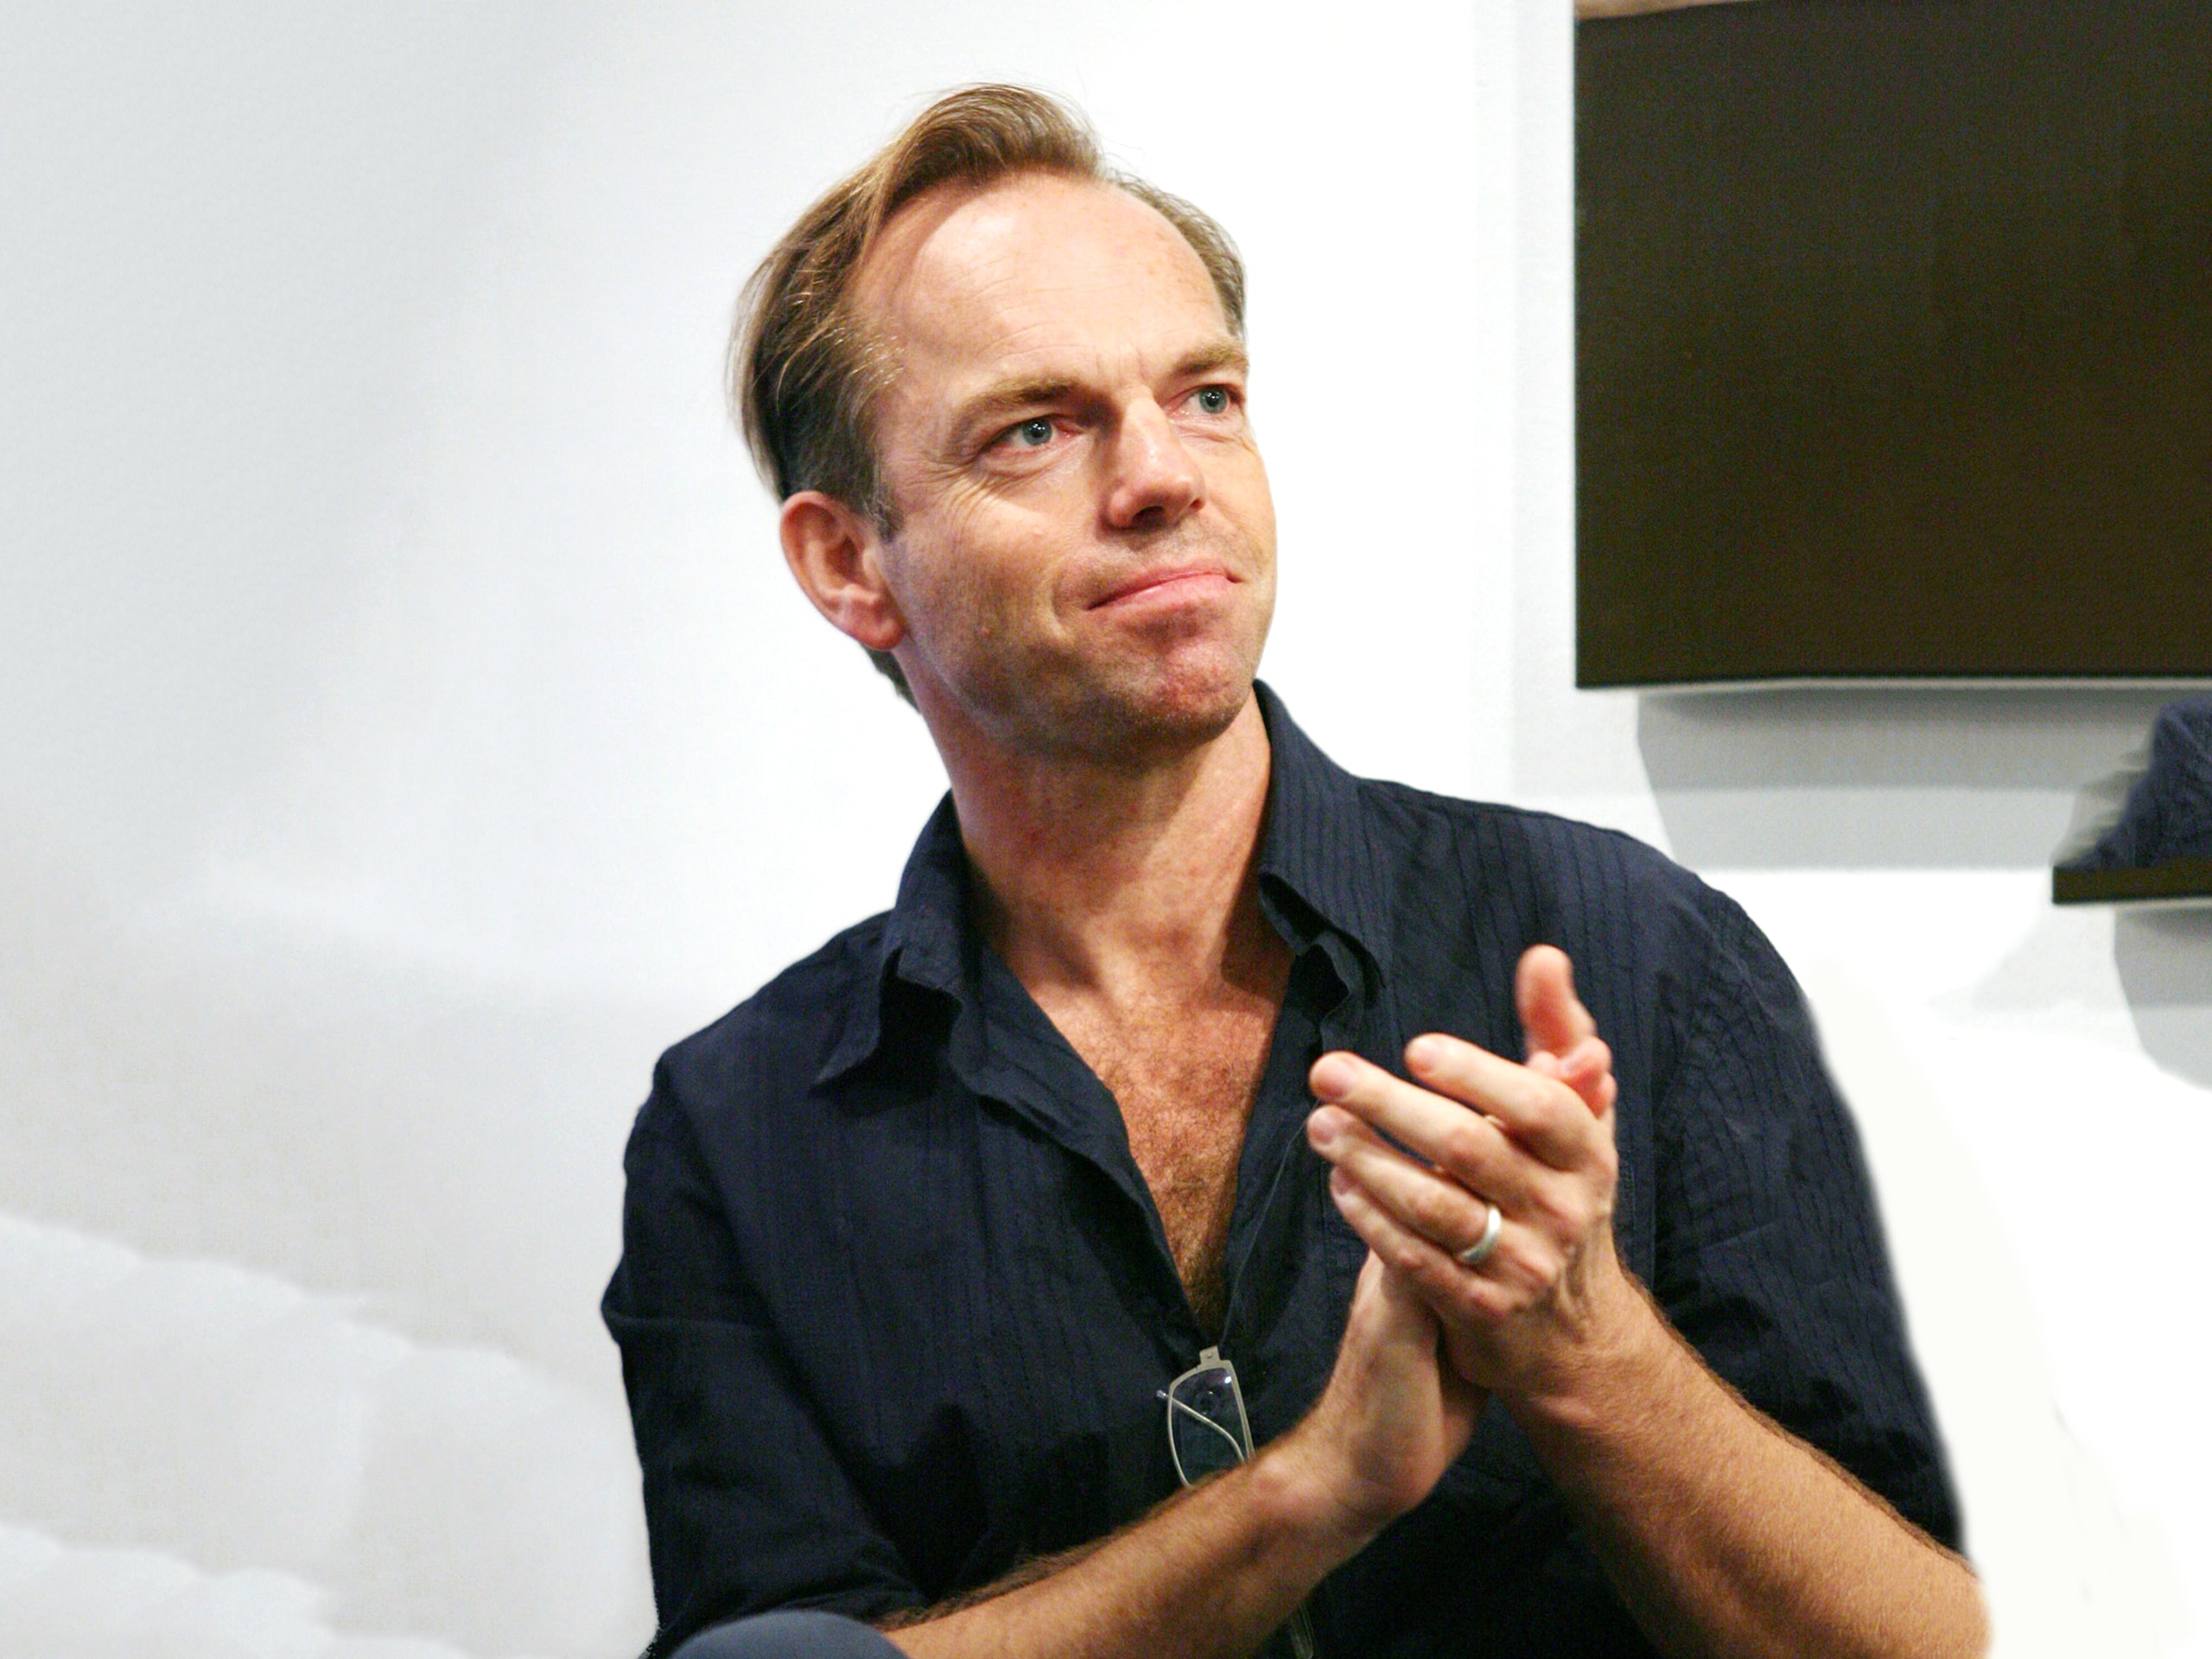 Hugo Weaving Wallpapers hd